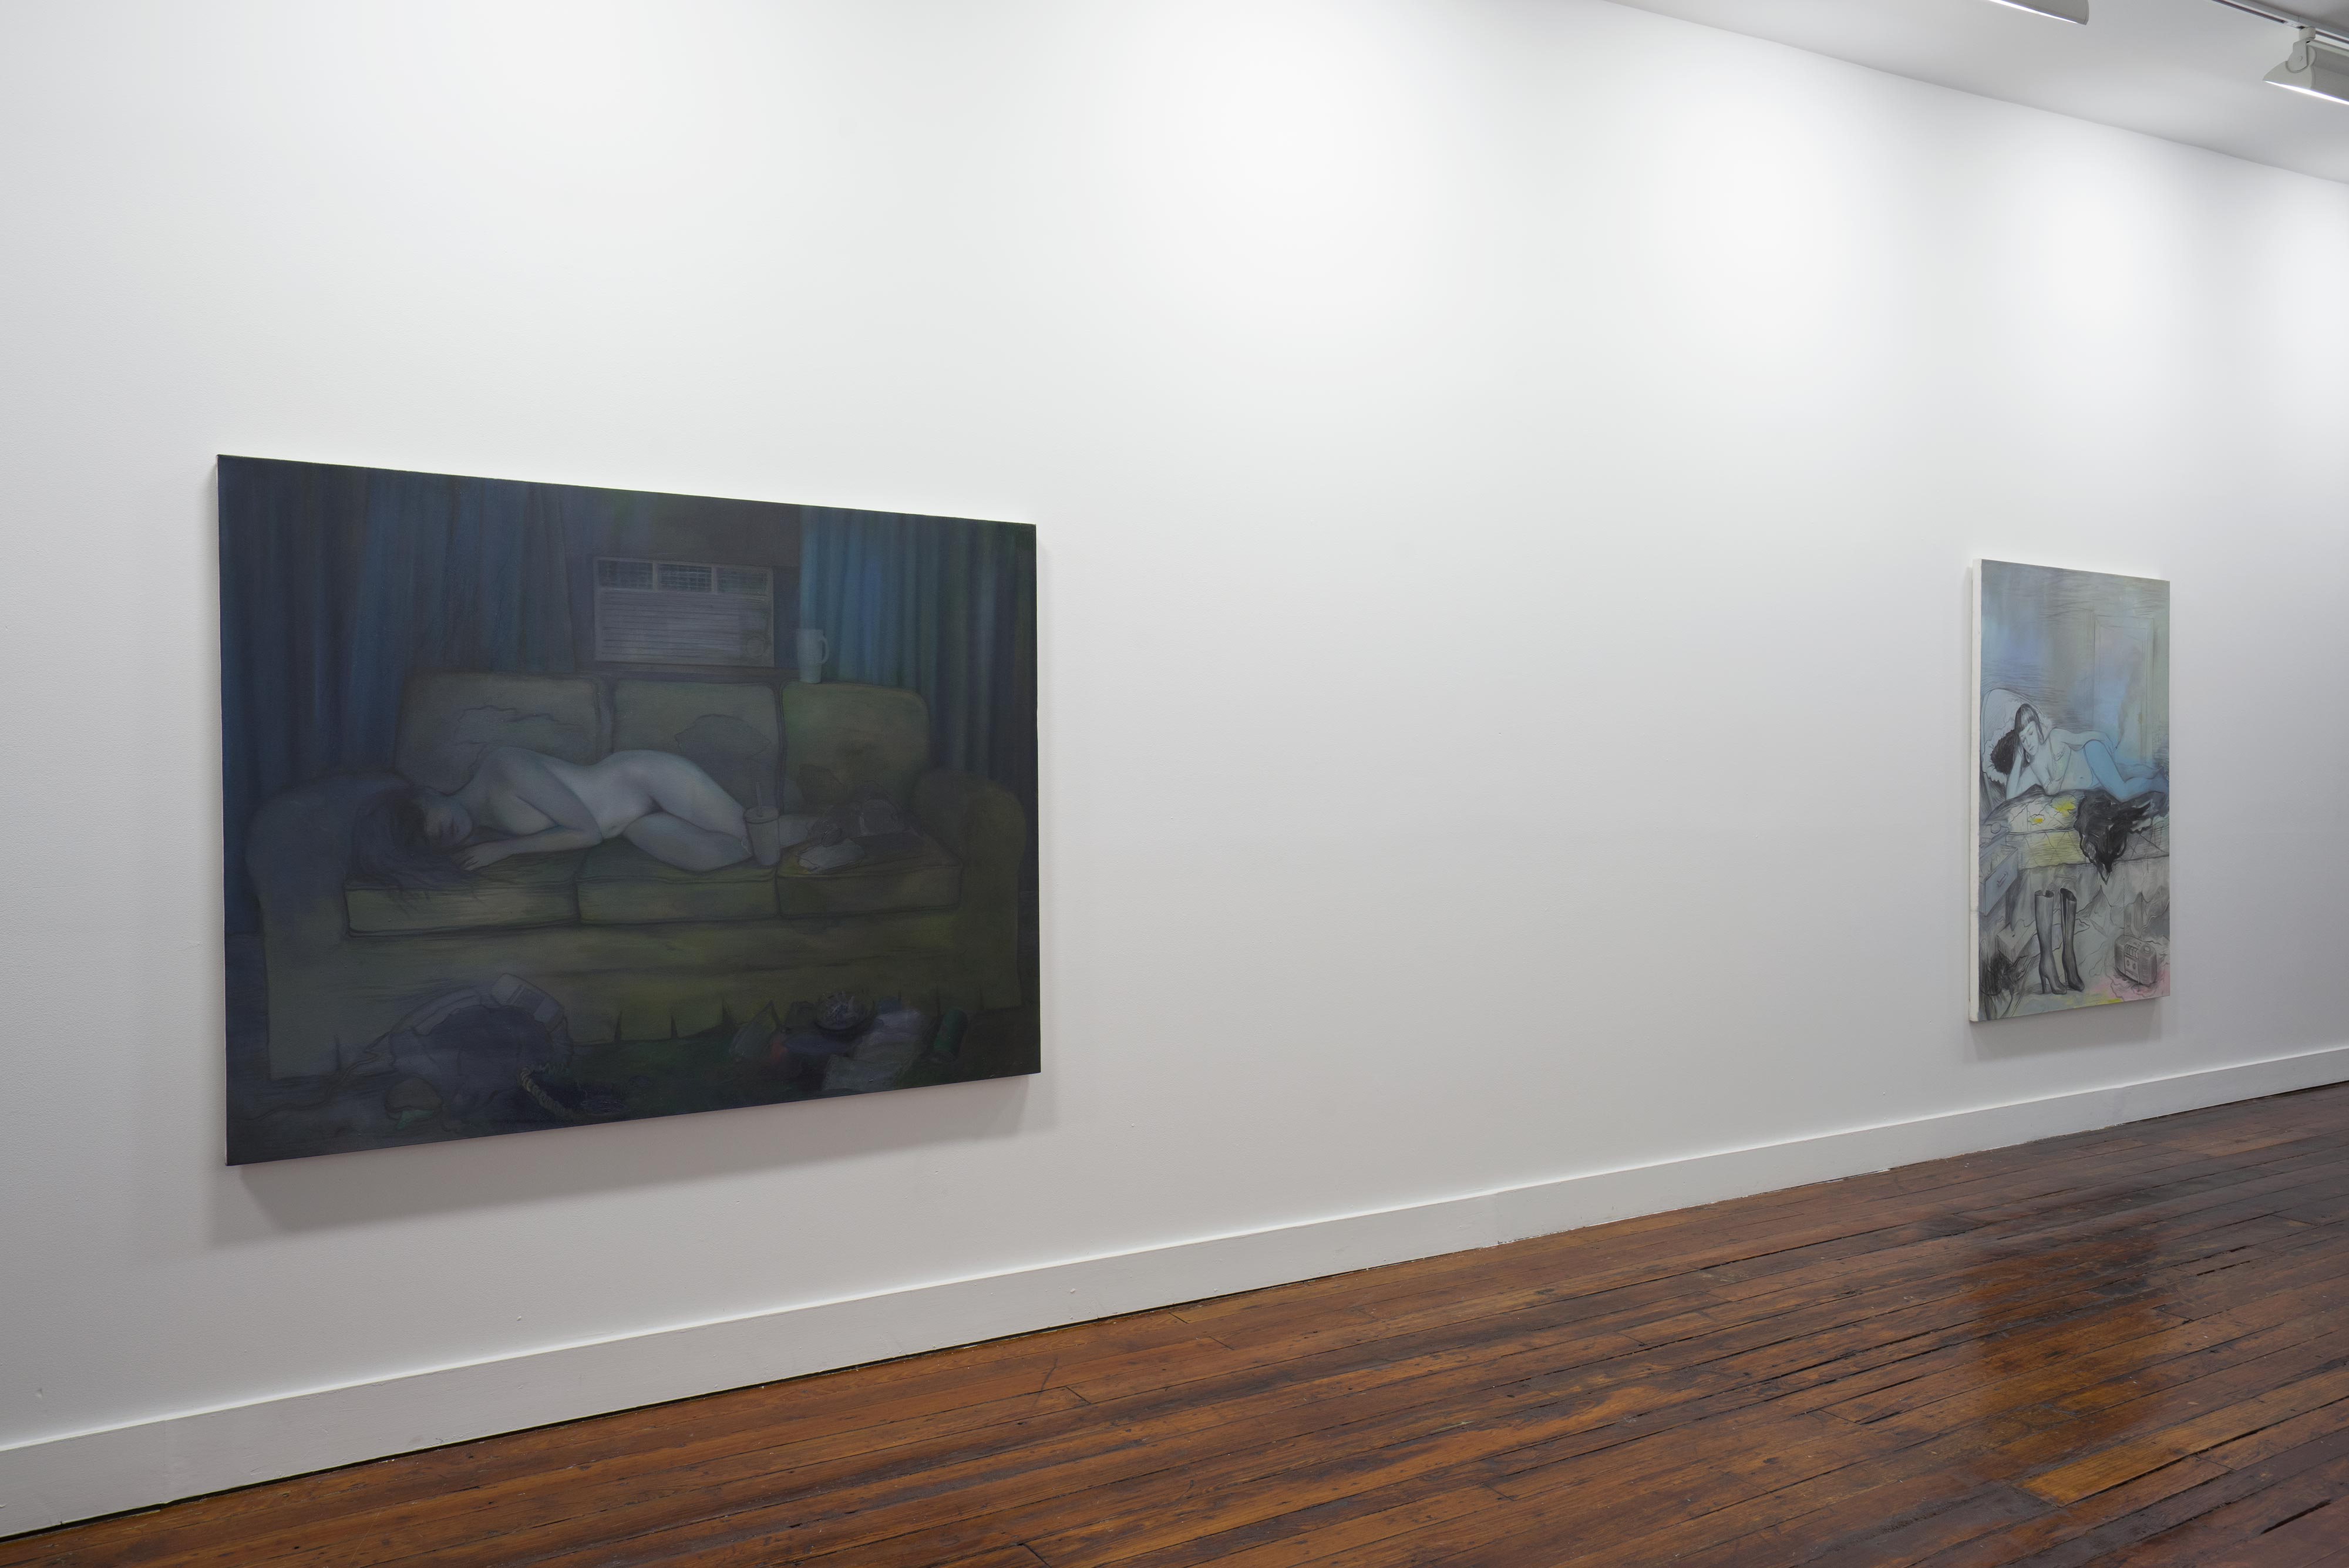 Imaginary Friend installation view